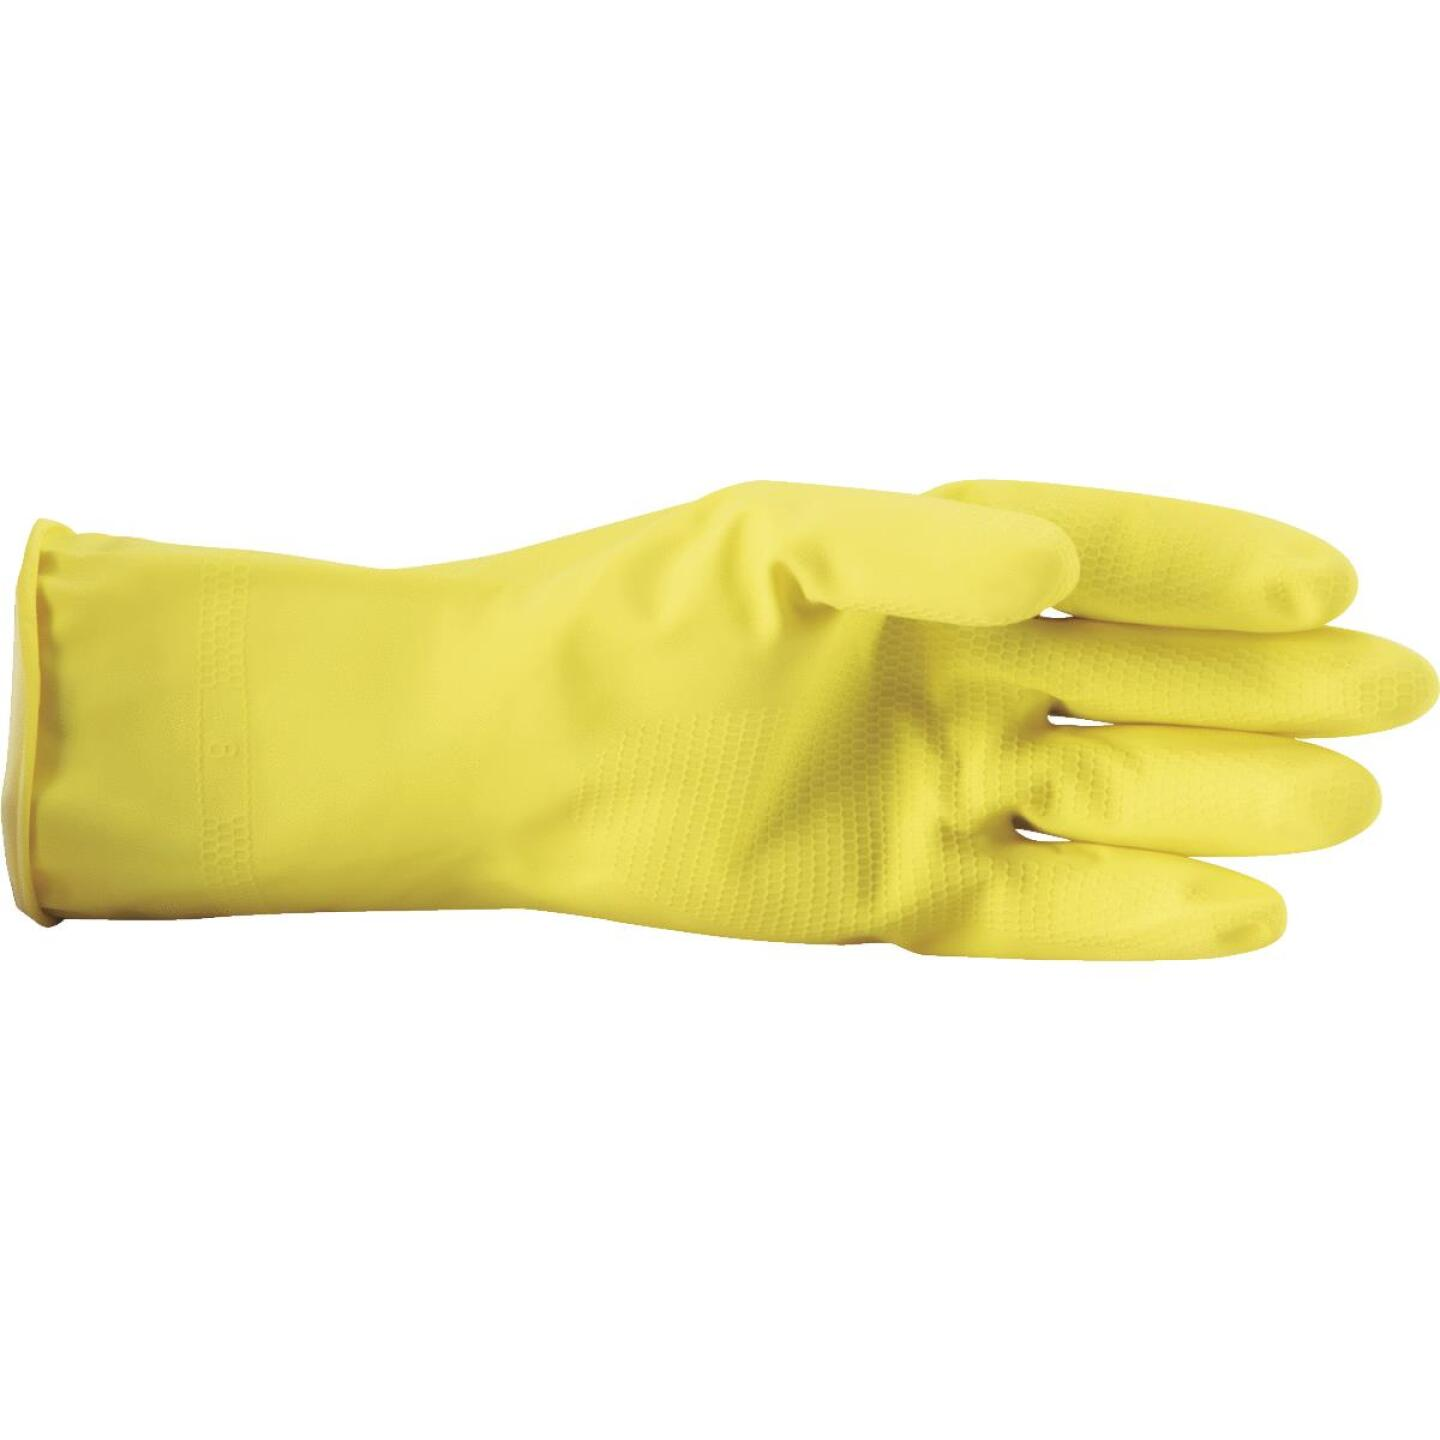 Do it Large Latex Rubber Glove Image 2